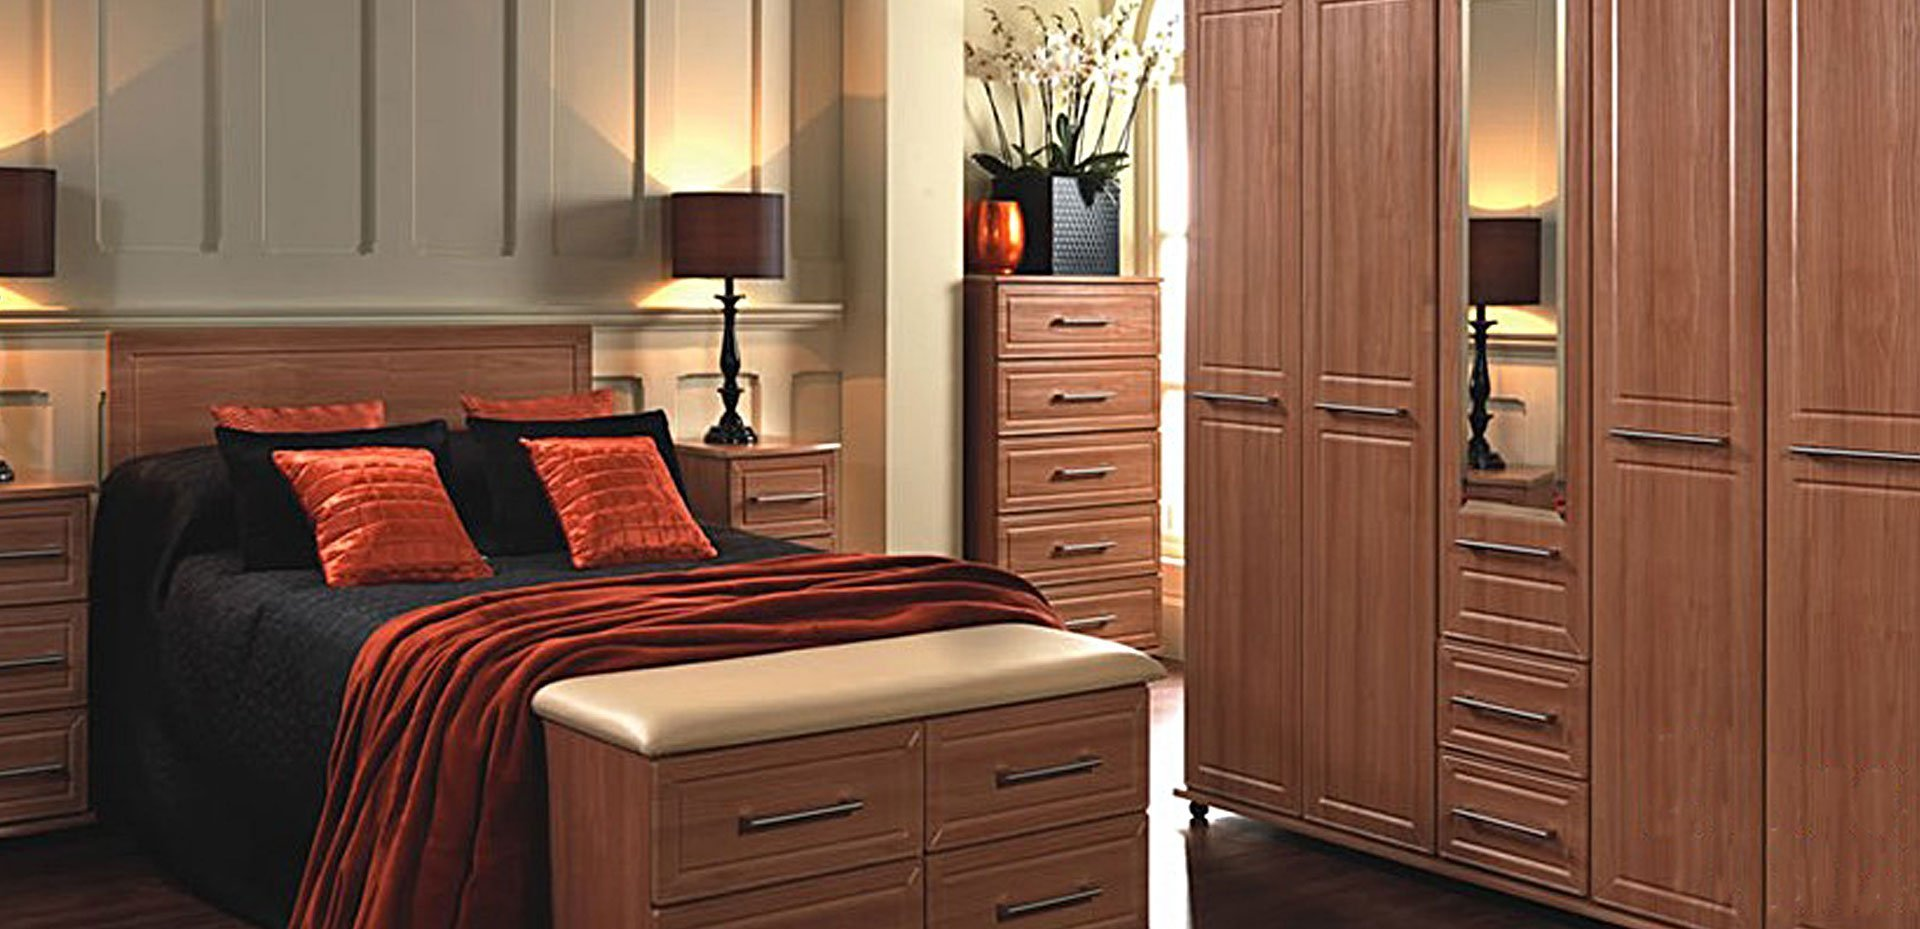 bedroom with wooden features